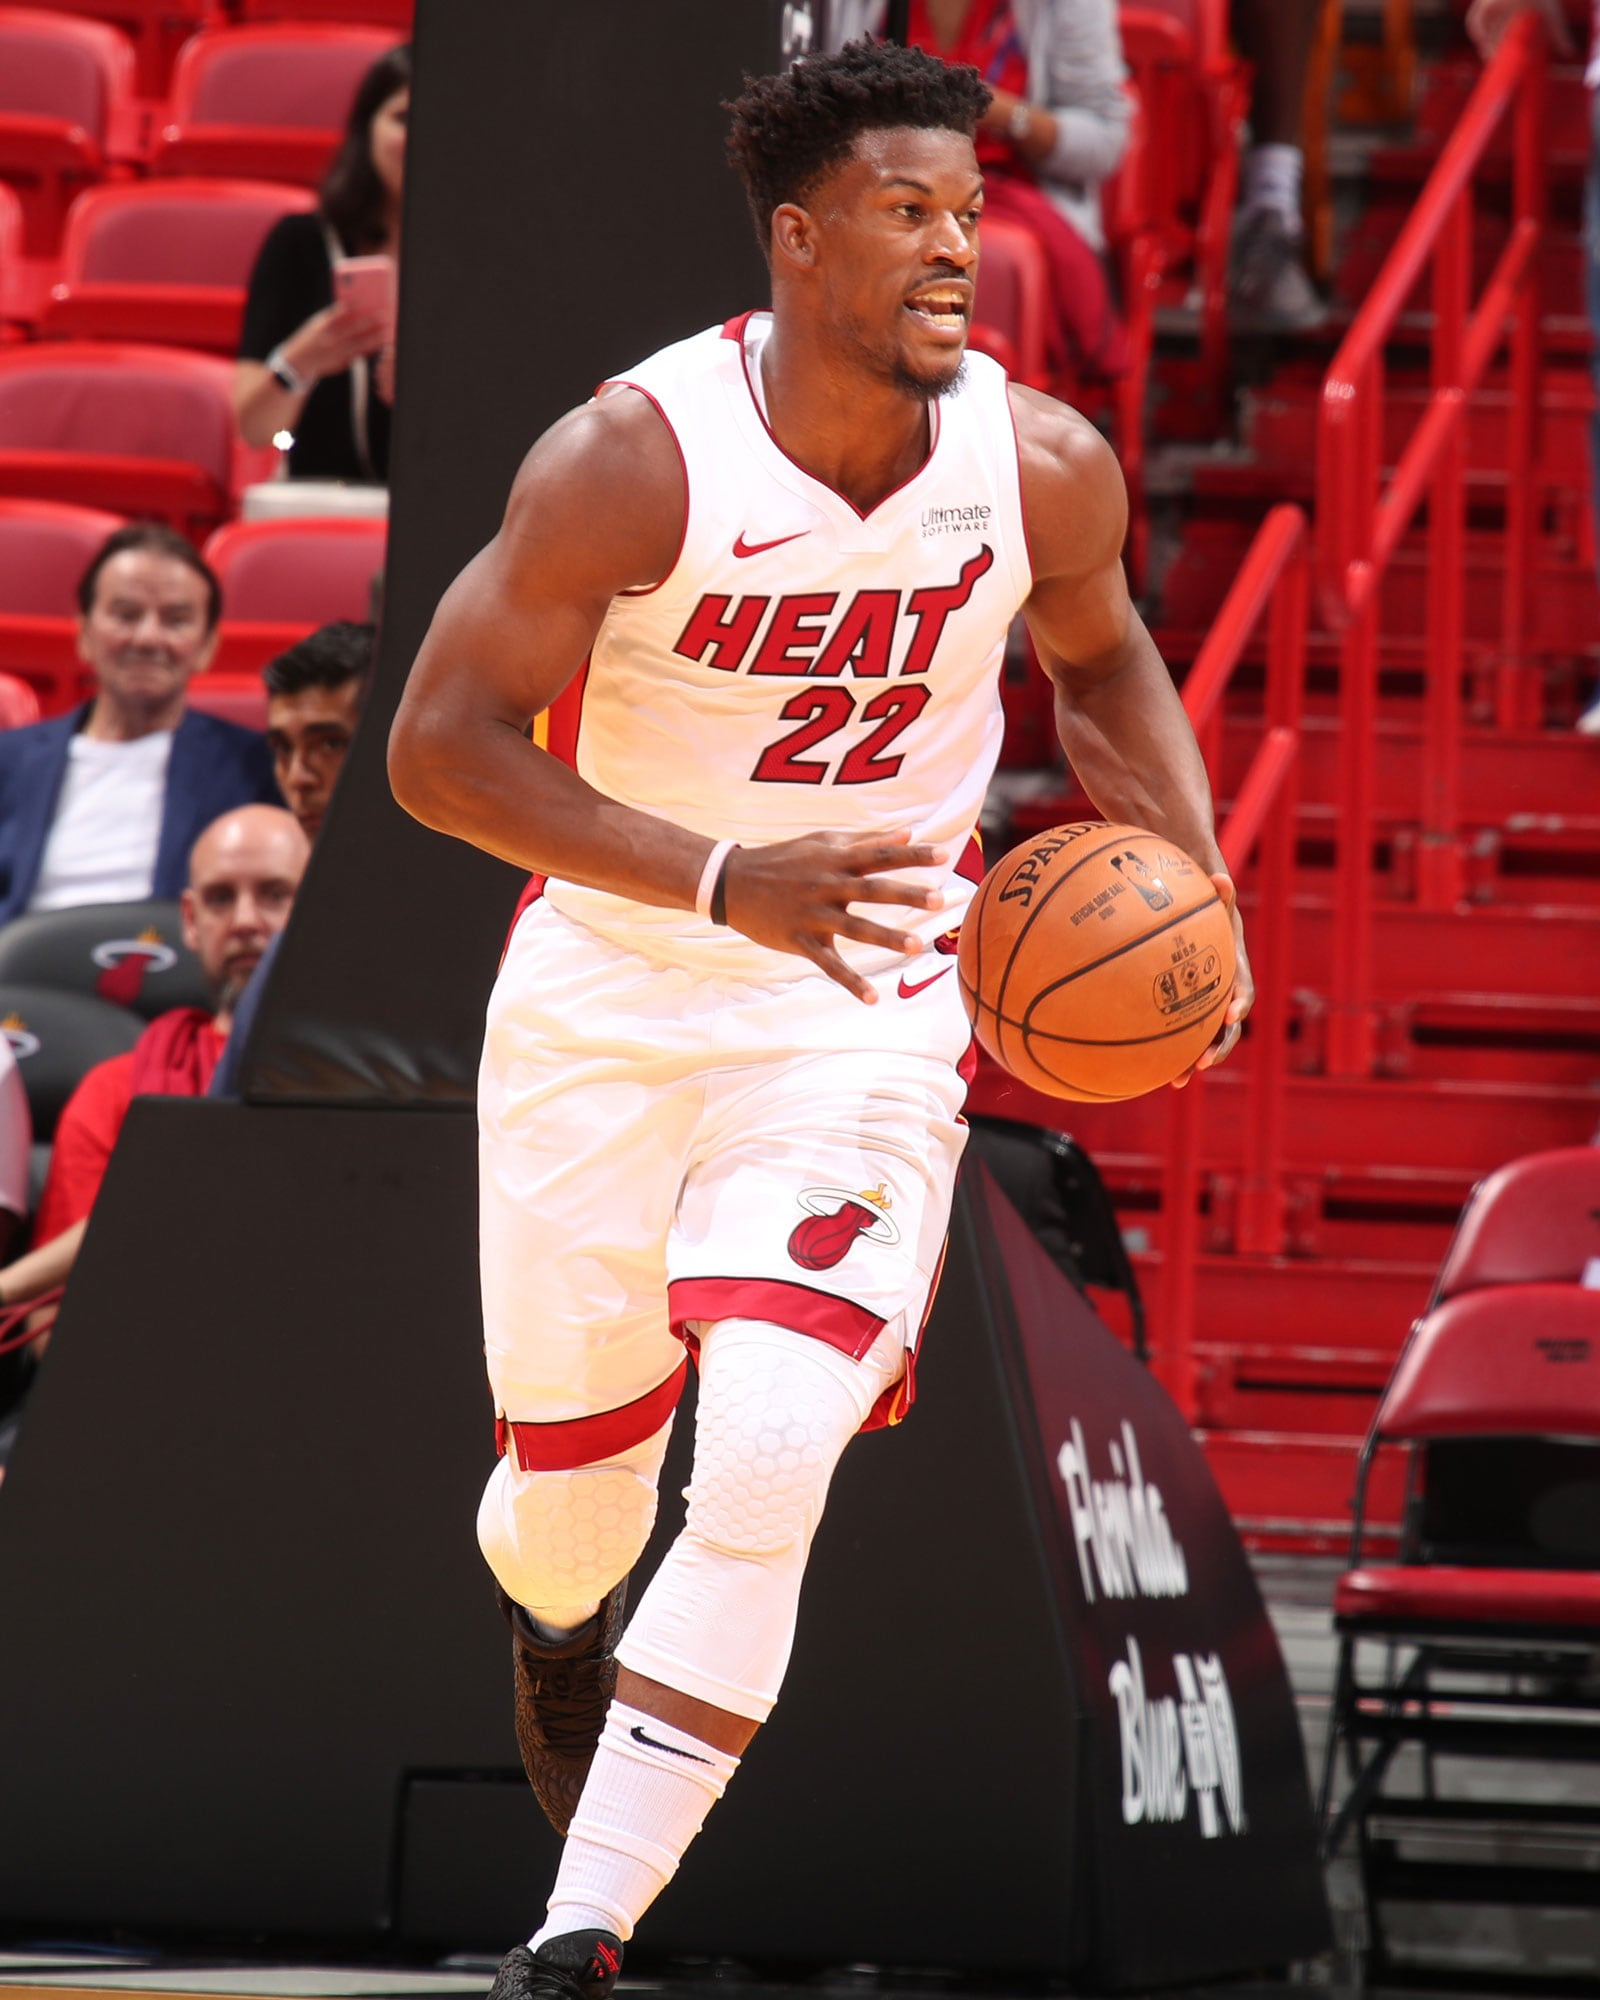 Jimmy Butler #22 of the Miami Heat handles the ball against the San Antonio Spurs on October 8, 2019 at American Airlines Arena in Miami, Florida.